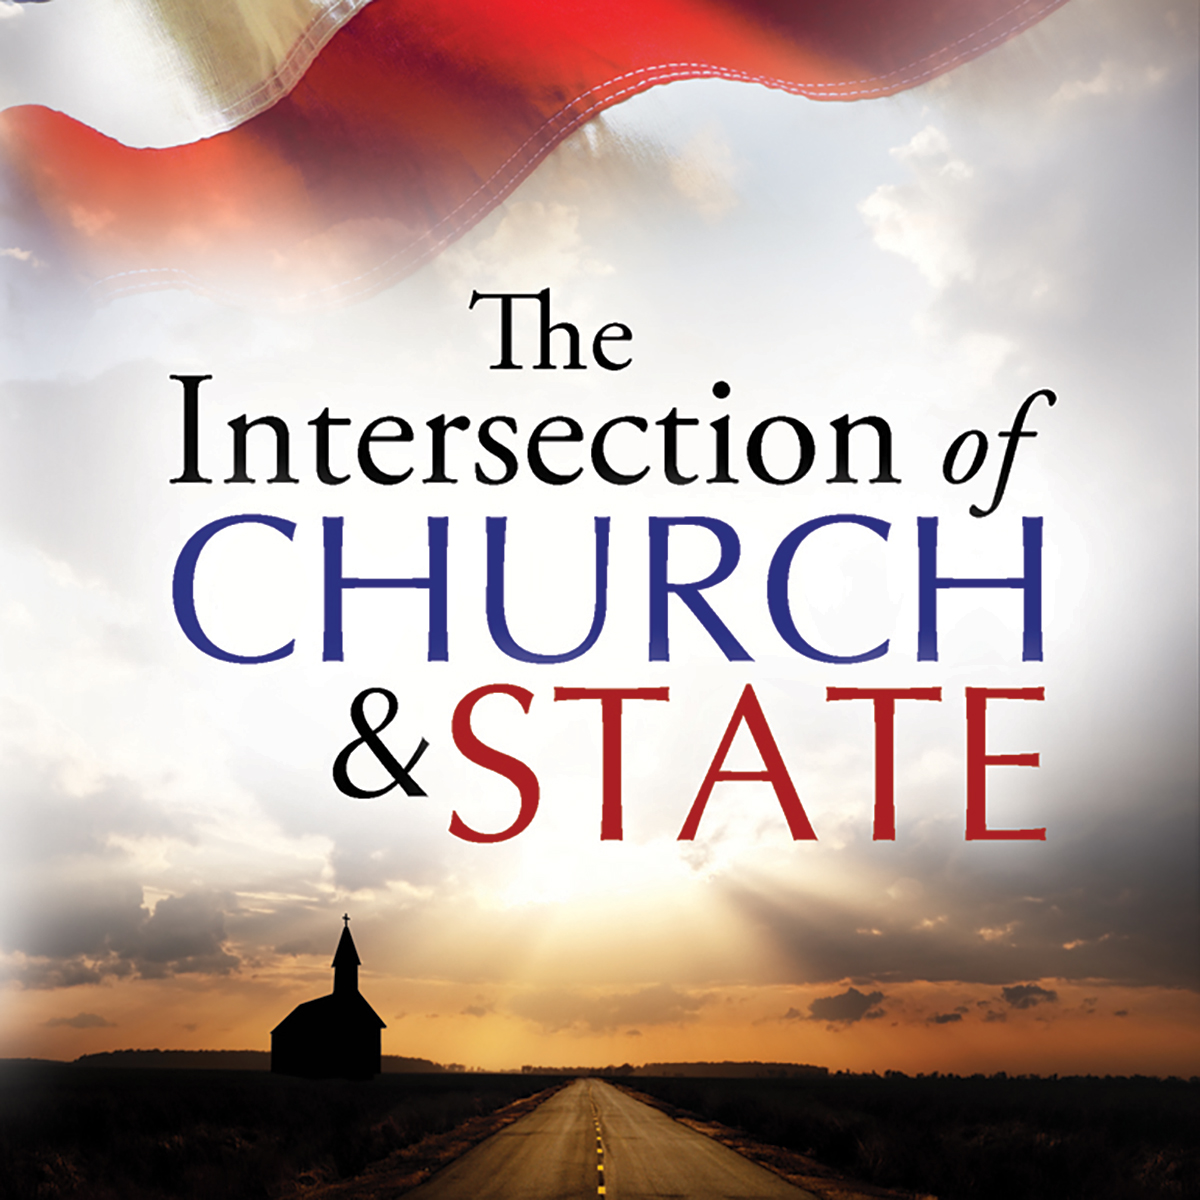 Church and state are historically interconnected